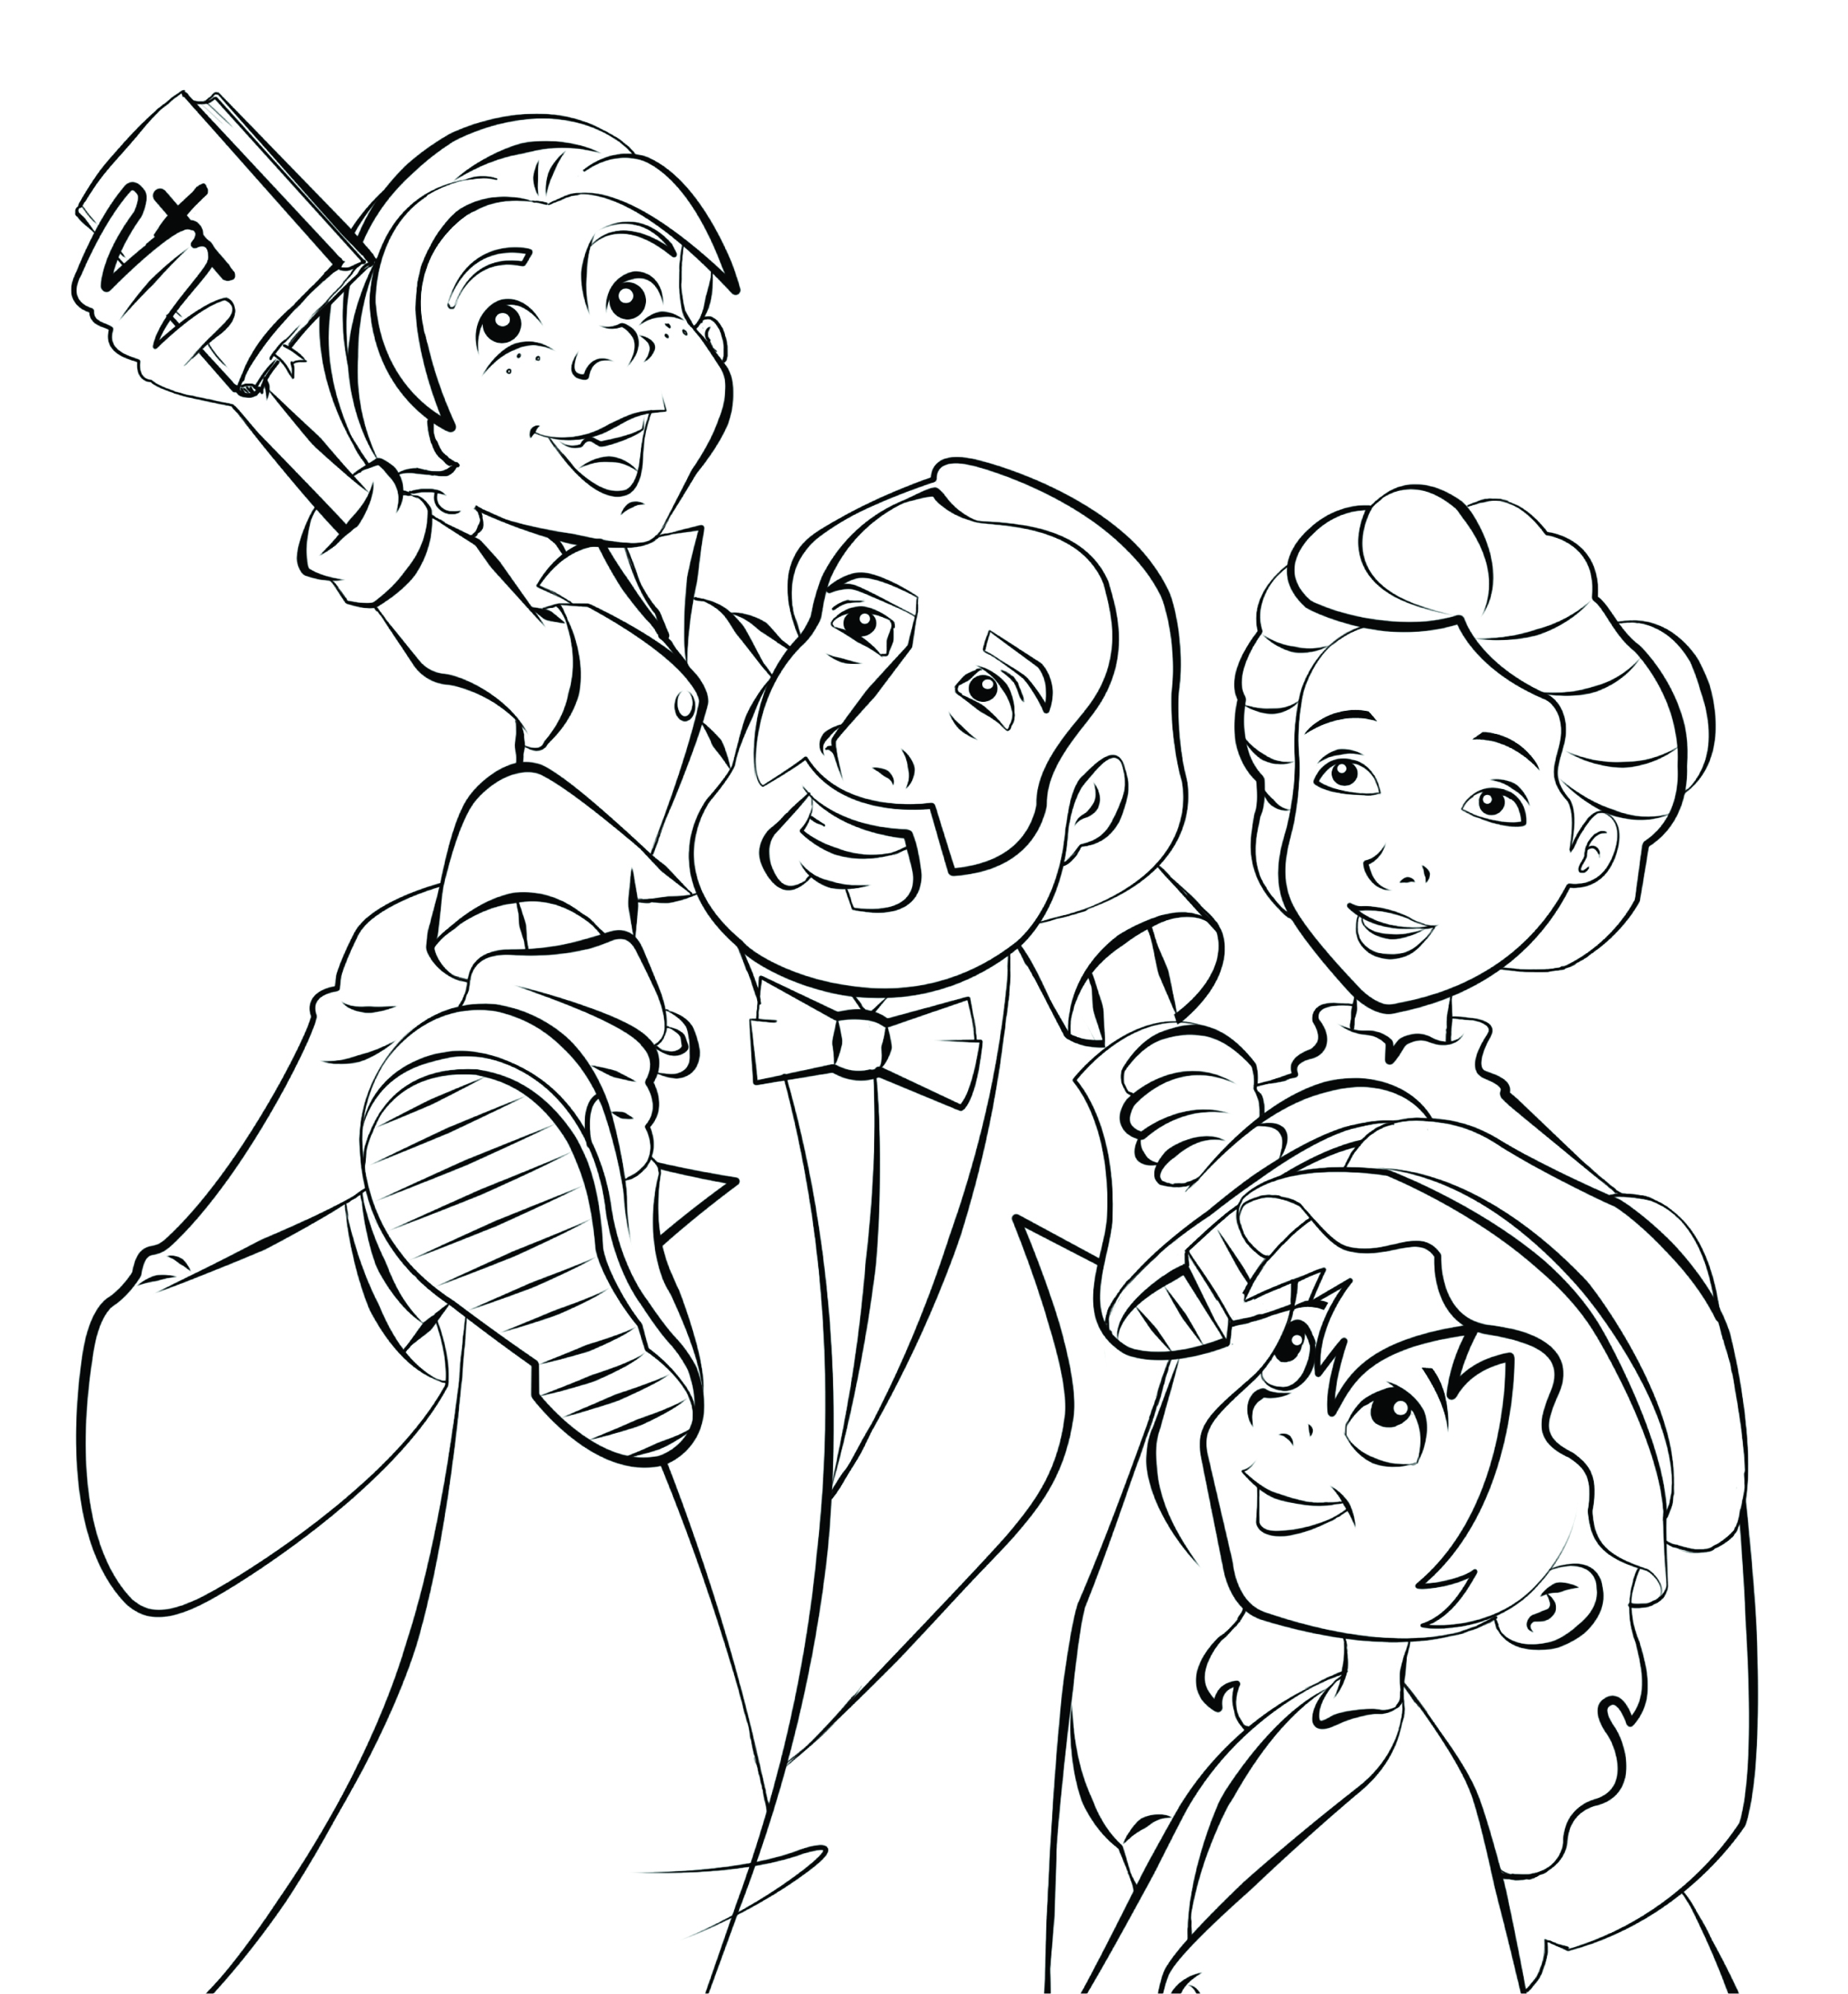 coloring pages gladys aylward - photo#18